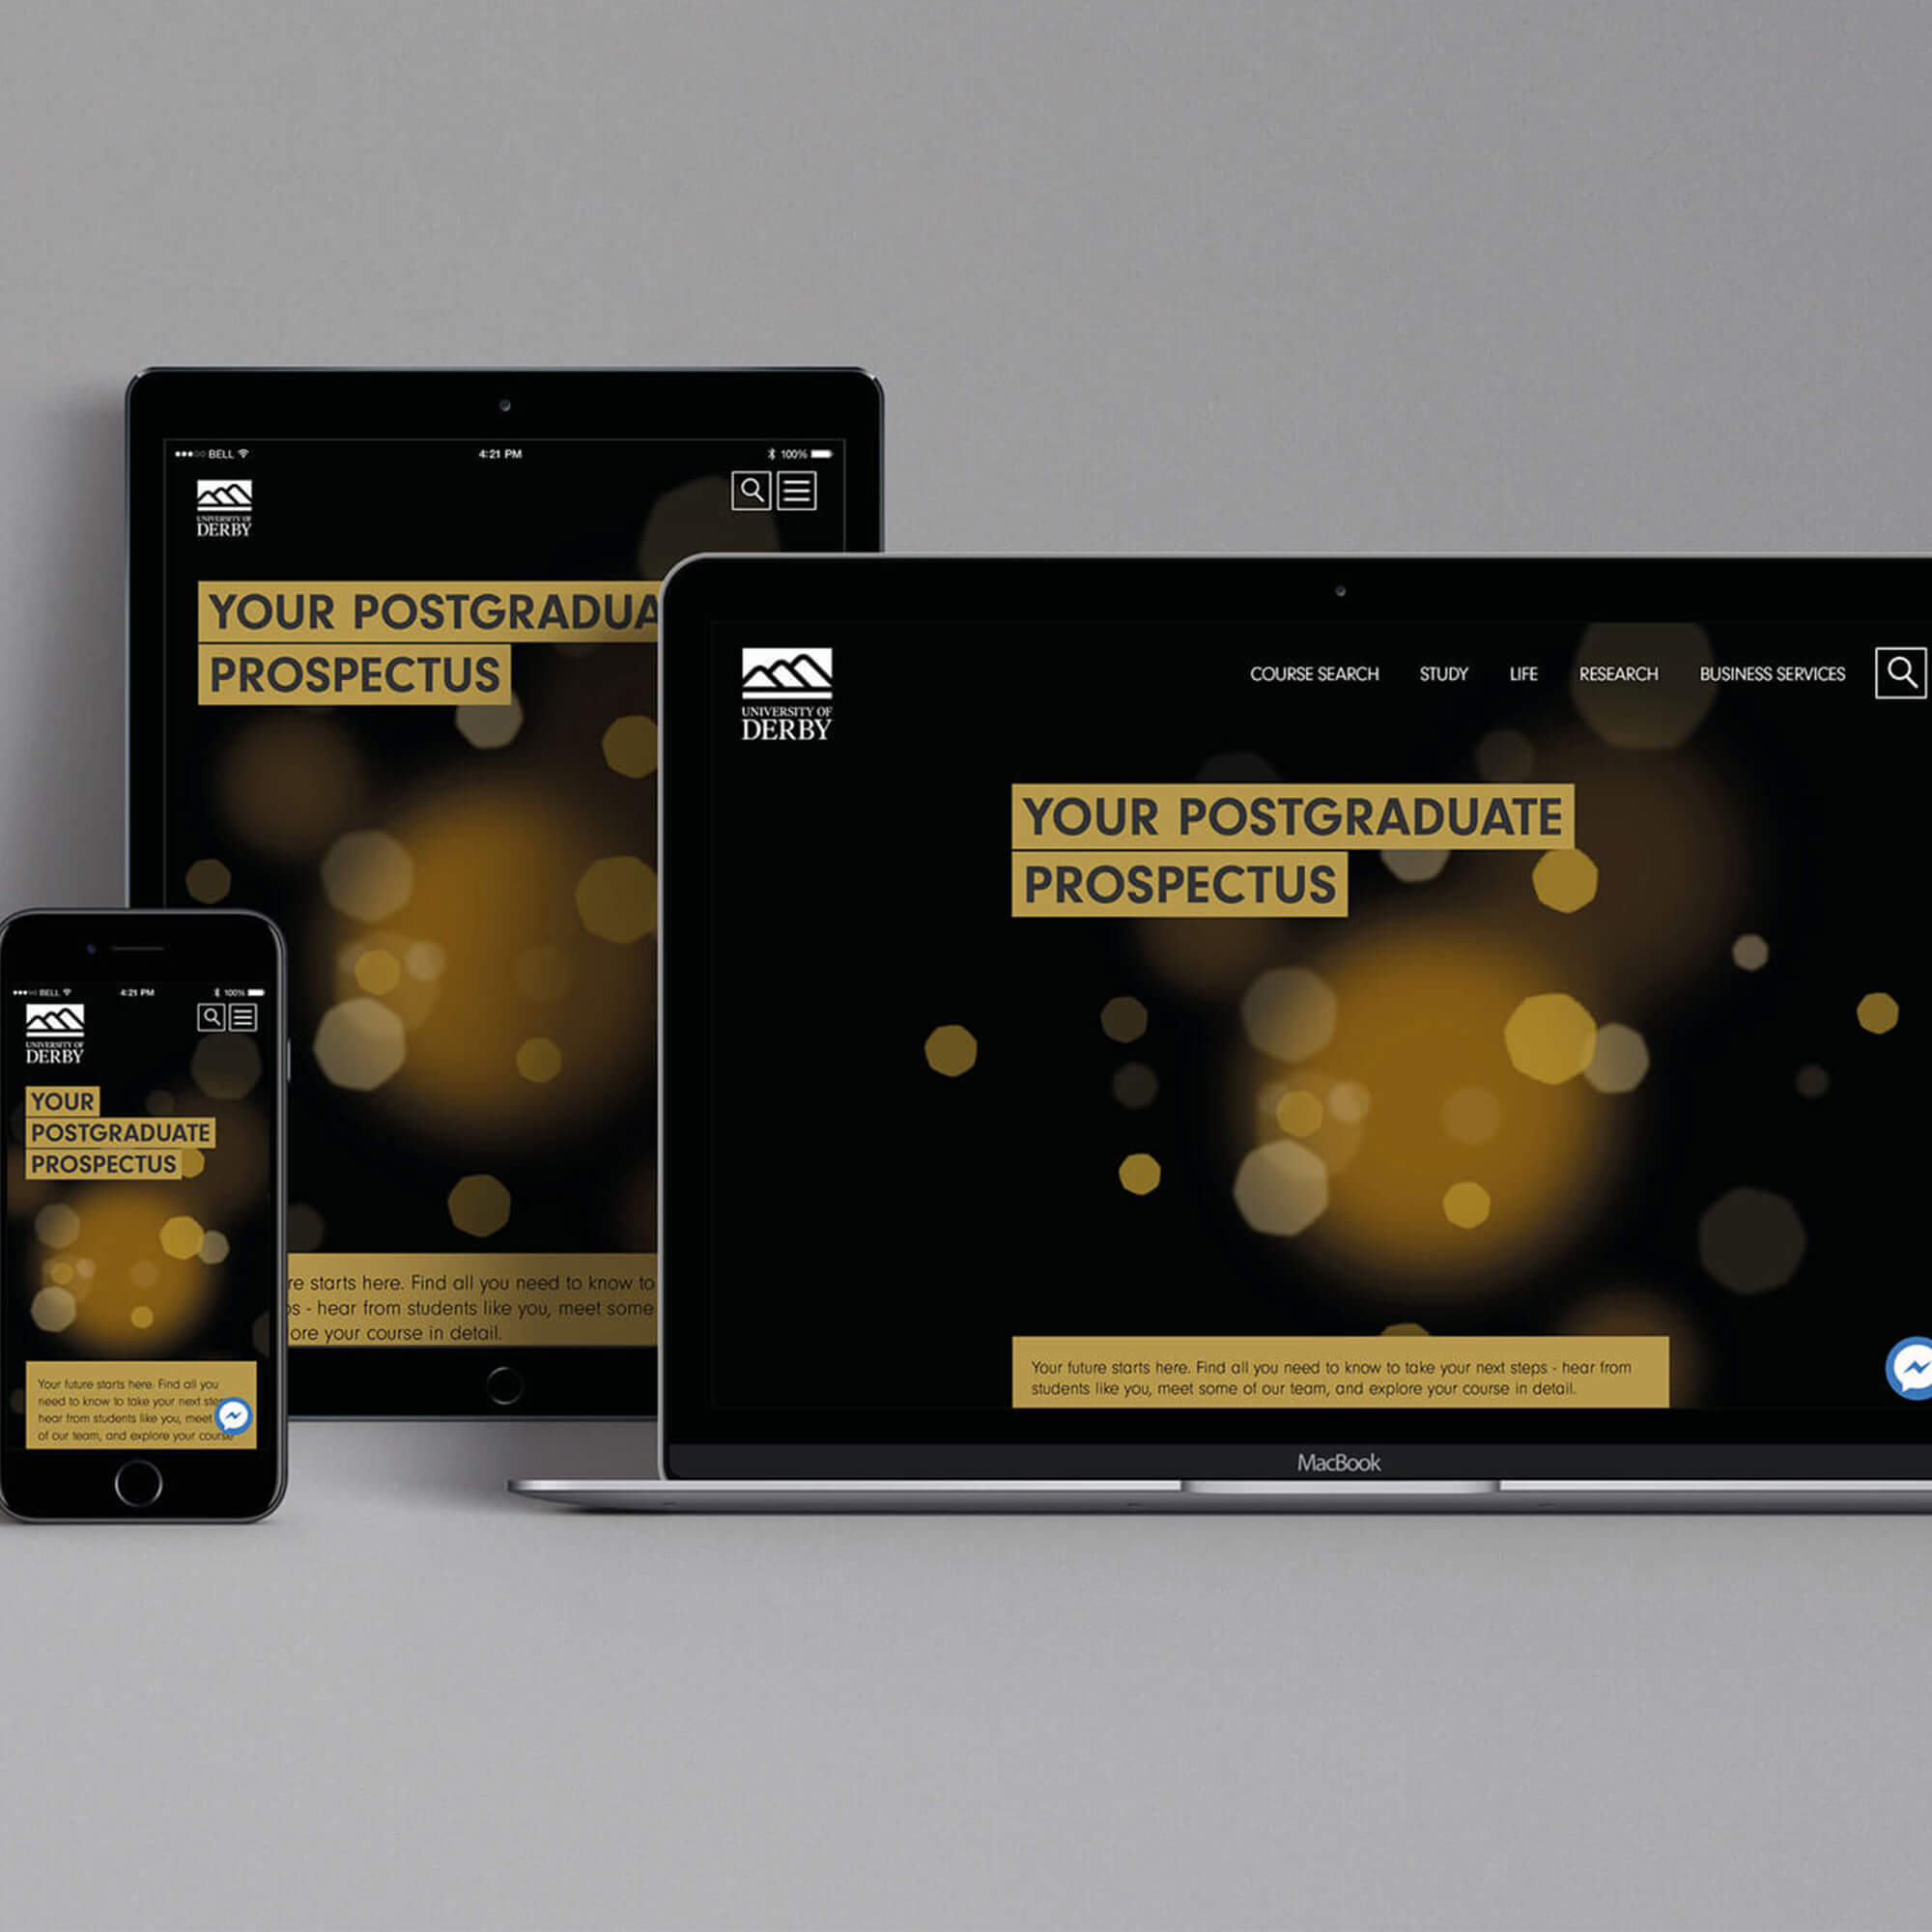 PG prospectus on a a laptop, tablet and mobile phone screen